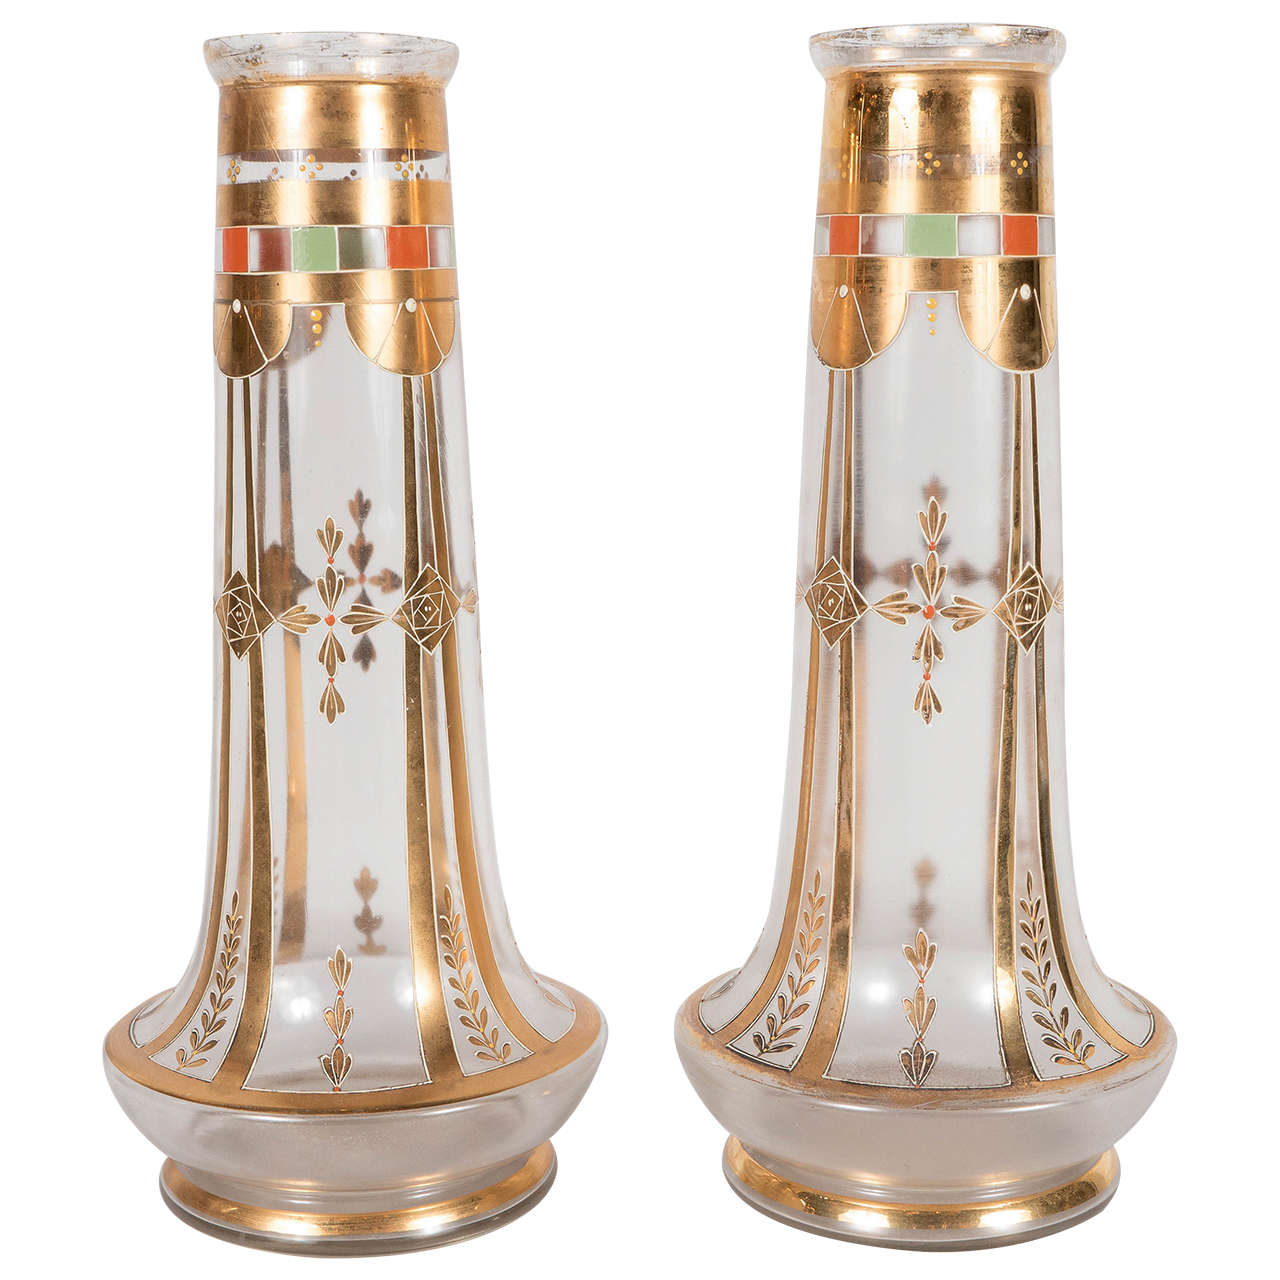 Exquisite Pair of Art Deco Glass Vases with 24-Karat Gold Relief Decoration